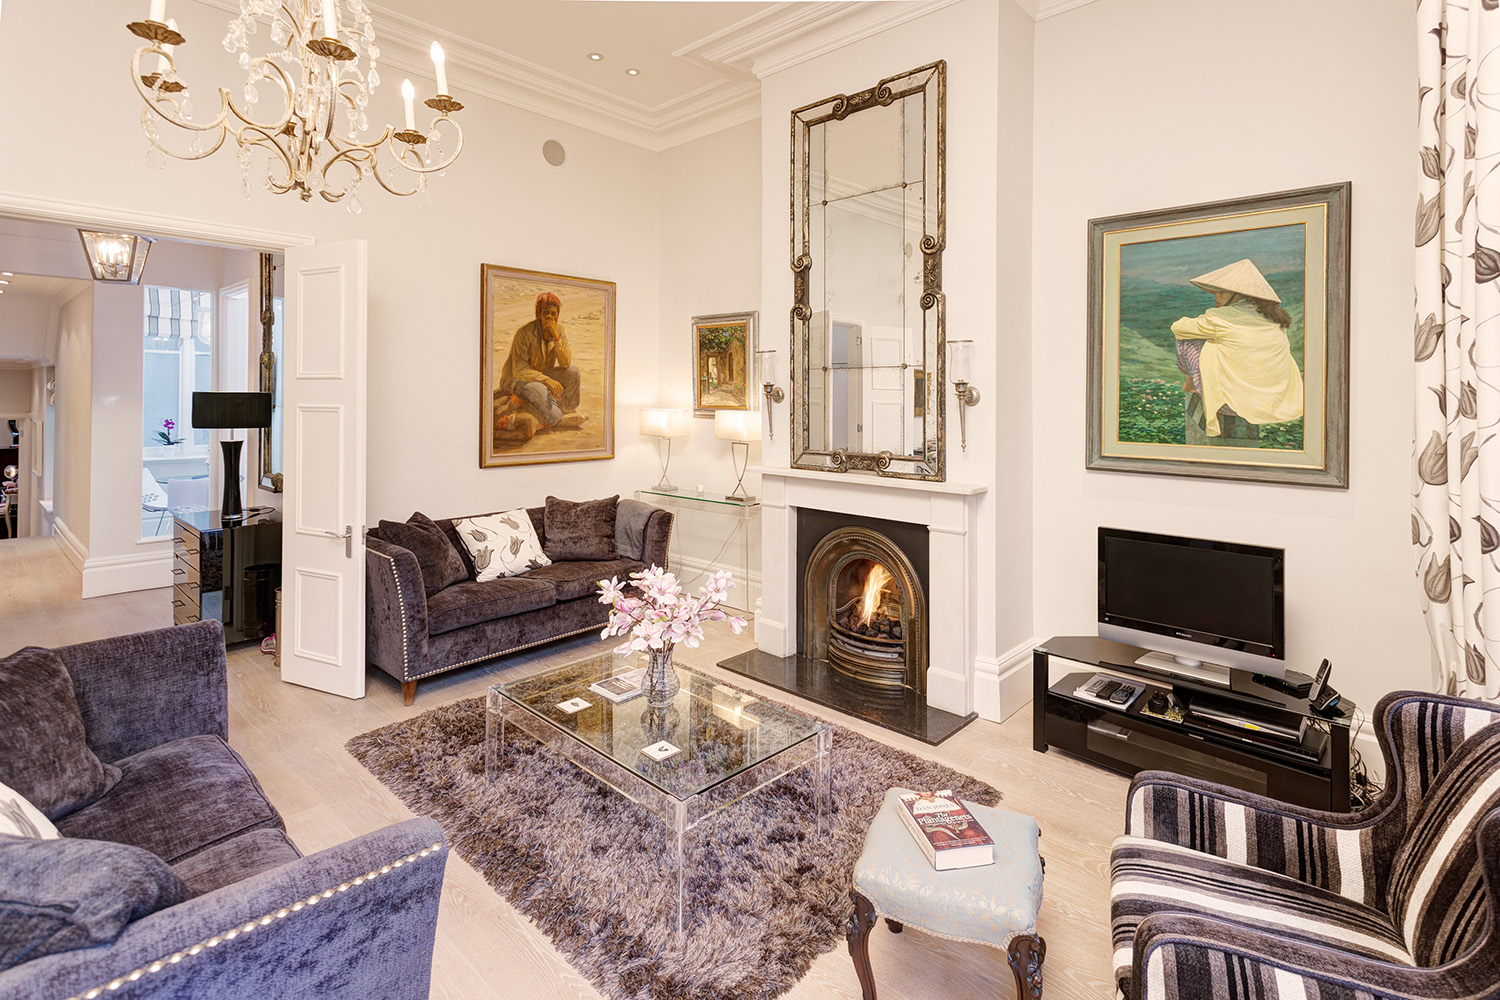 London_Portrait_Photographer_Architectural_Interiors_Fitzrovia-003.jpg